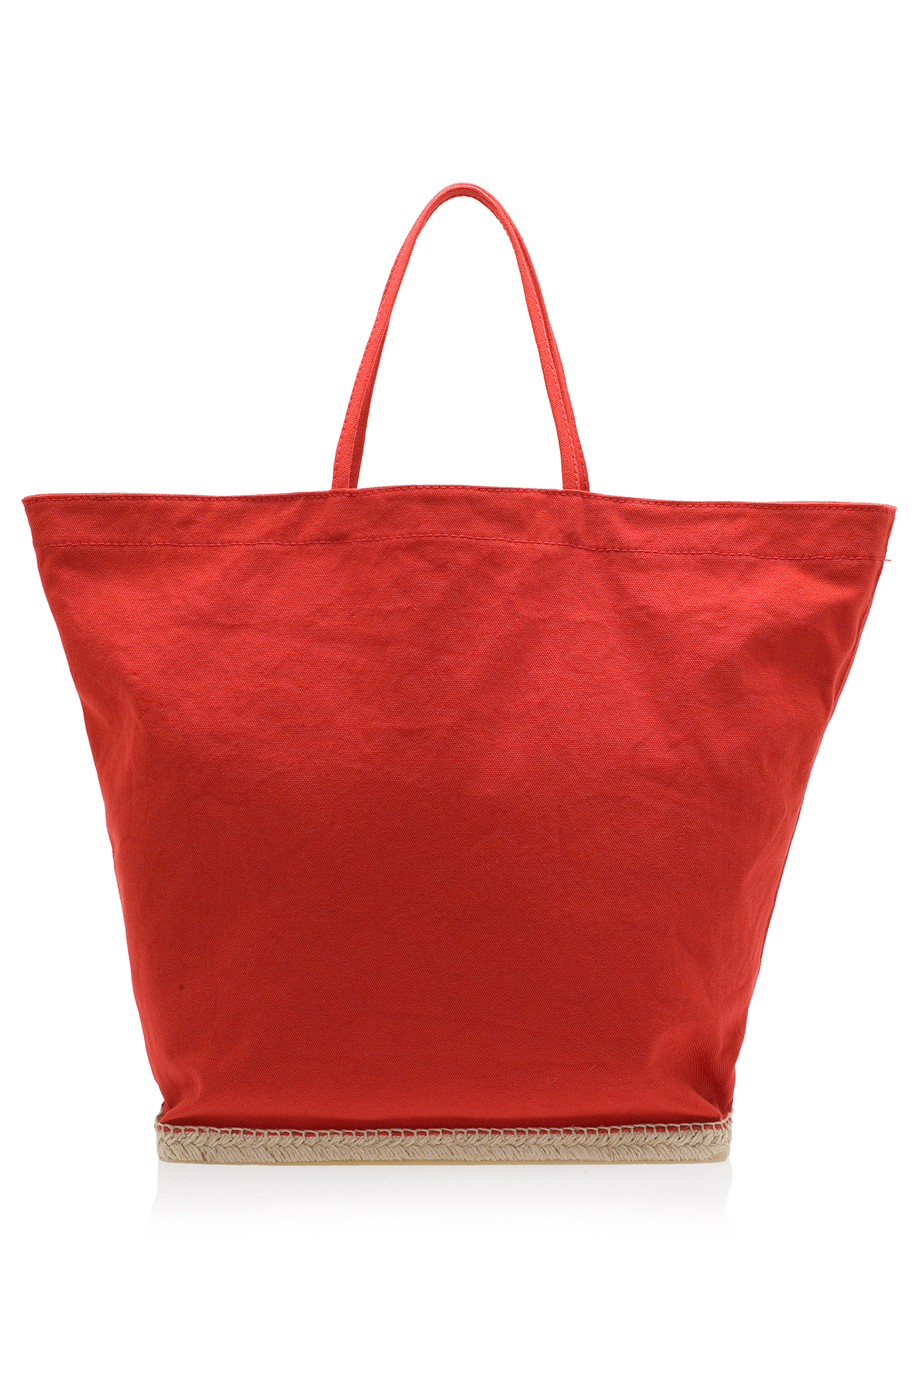 Castaner st tropez beach tote in red lyst for Designer beach bags and totes